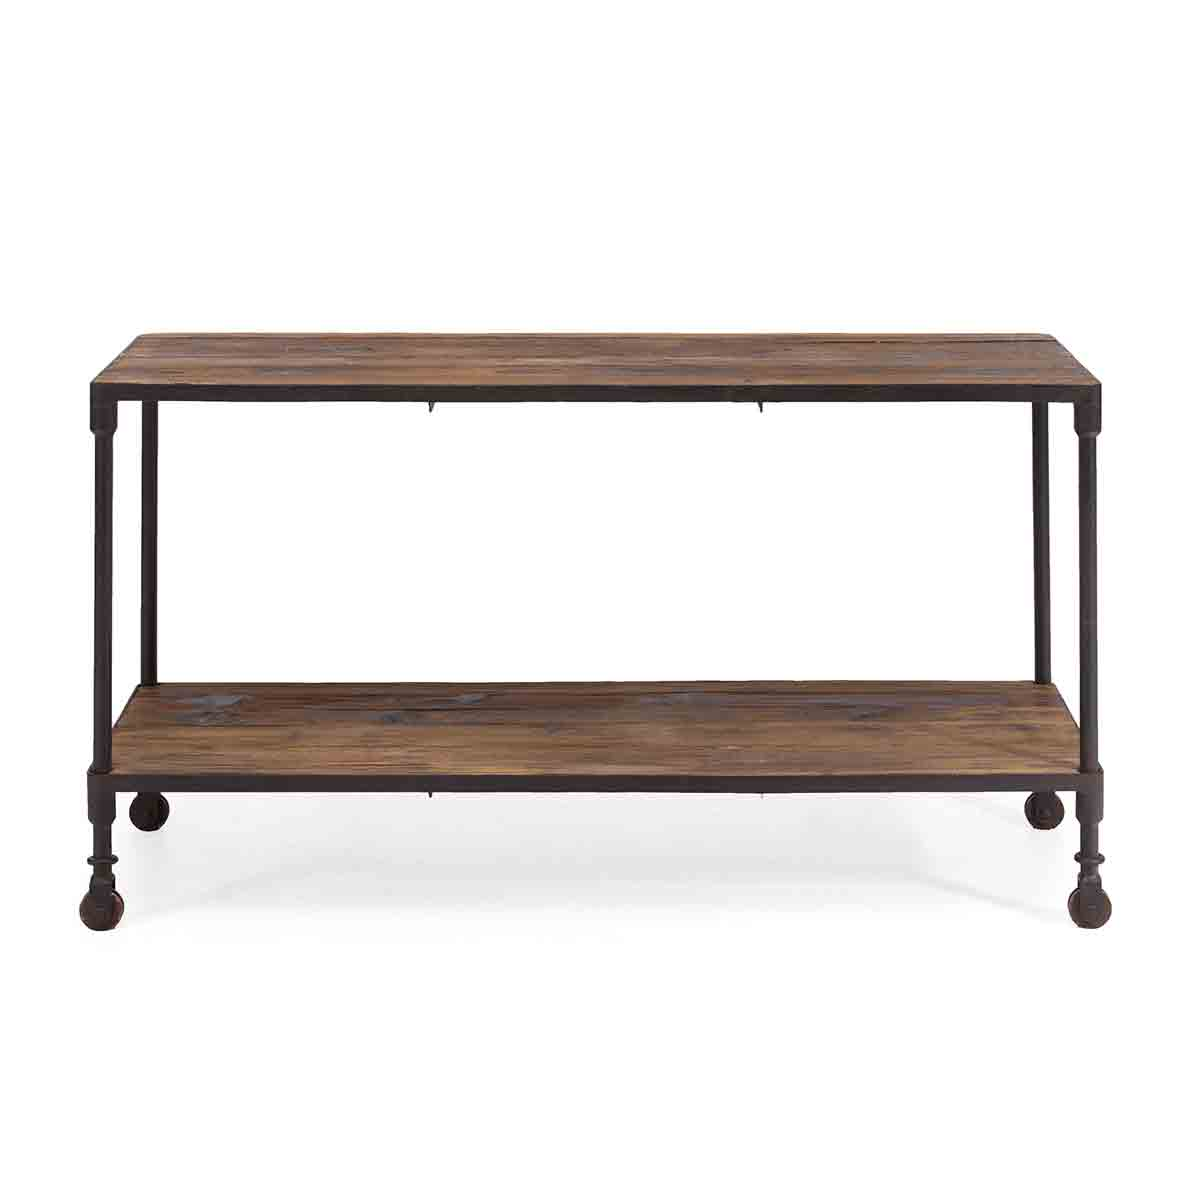 Zuo Era Mission Bay Distressed Natural Wide 2 Level Shelf